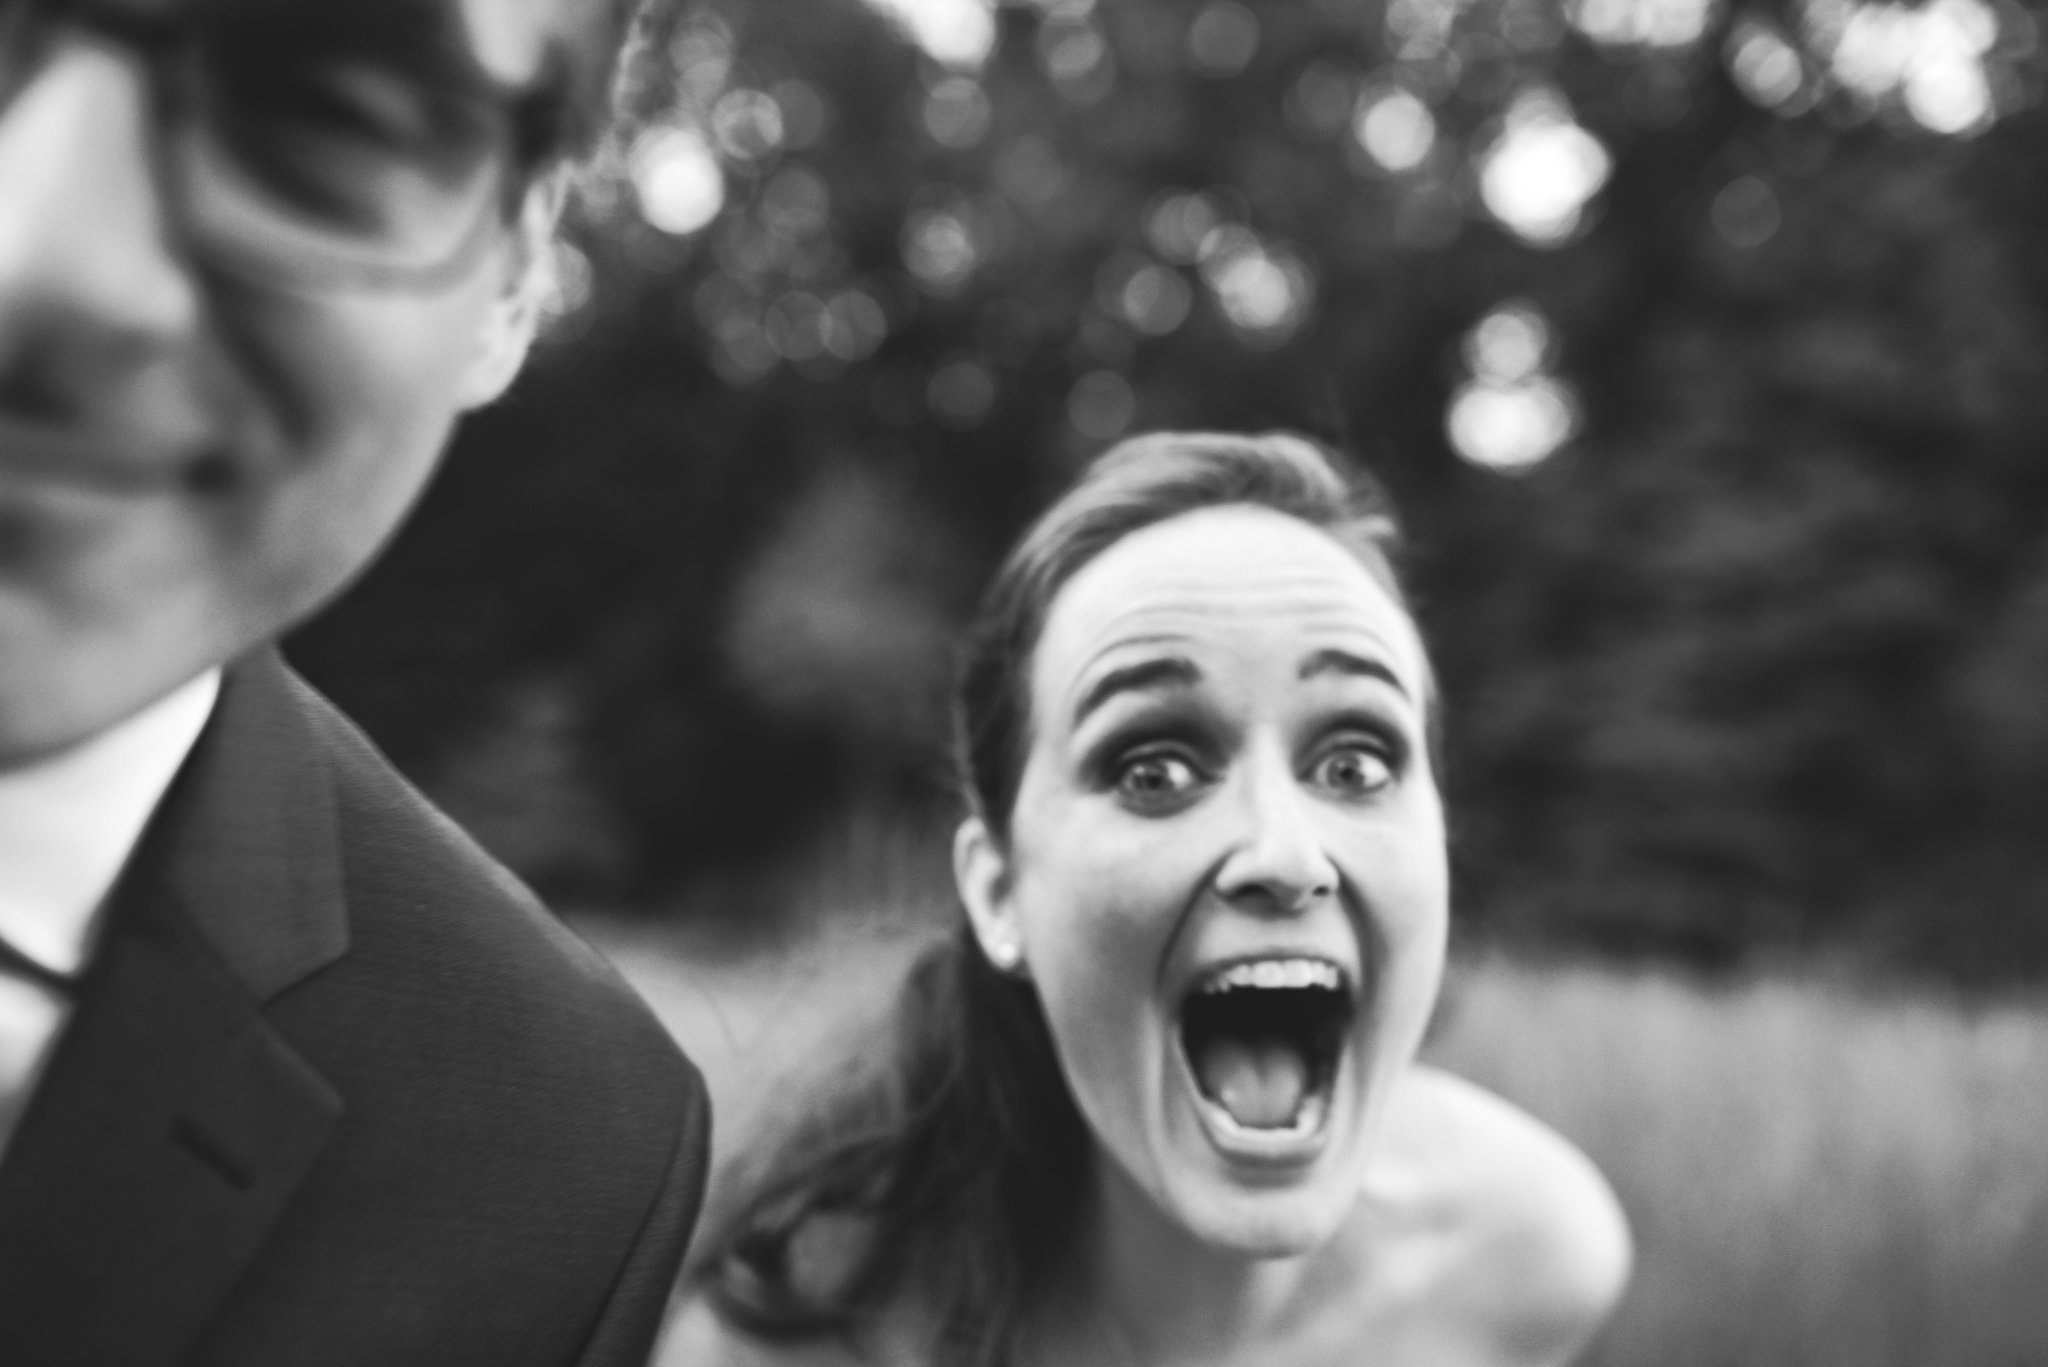 Vintage, DIY, Rustic, Germantown, Baltimore Wedding Photographer, Alternative, Casual, Outdoor Wedding, Church Wedding, Whimsical, Campground, Bride and Groom, Black and White Photo, Fun, Silly